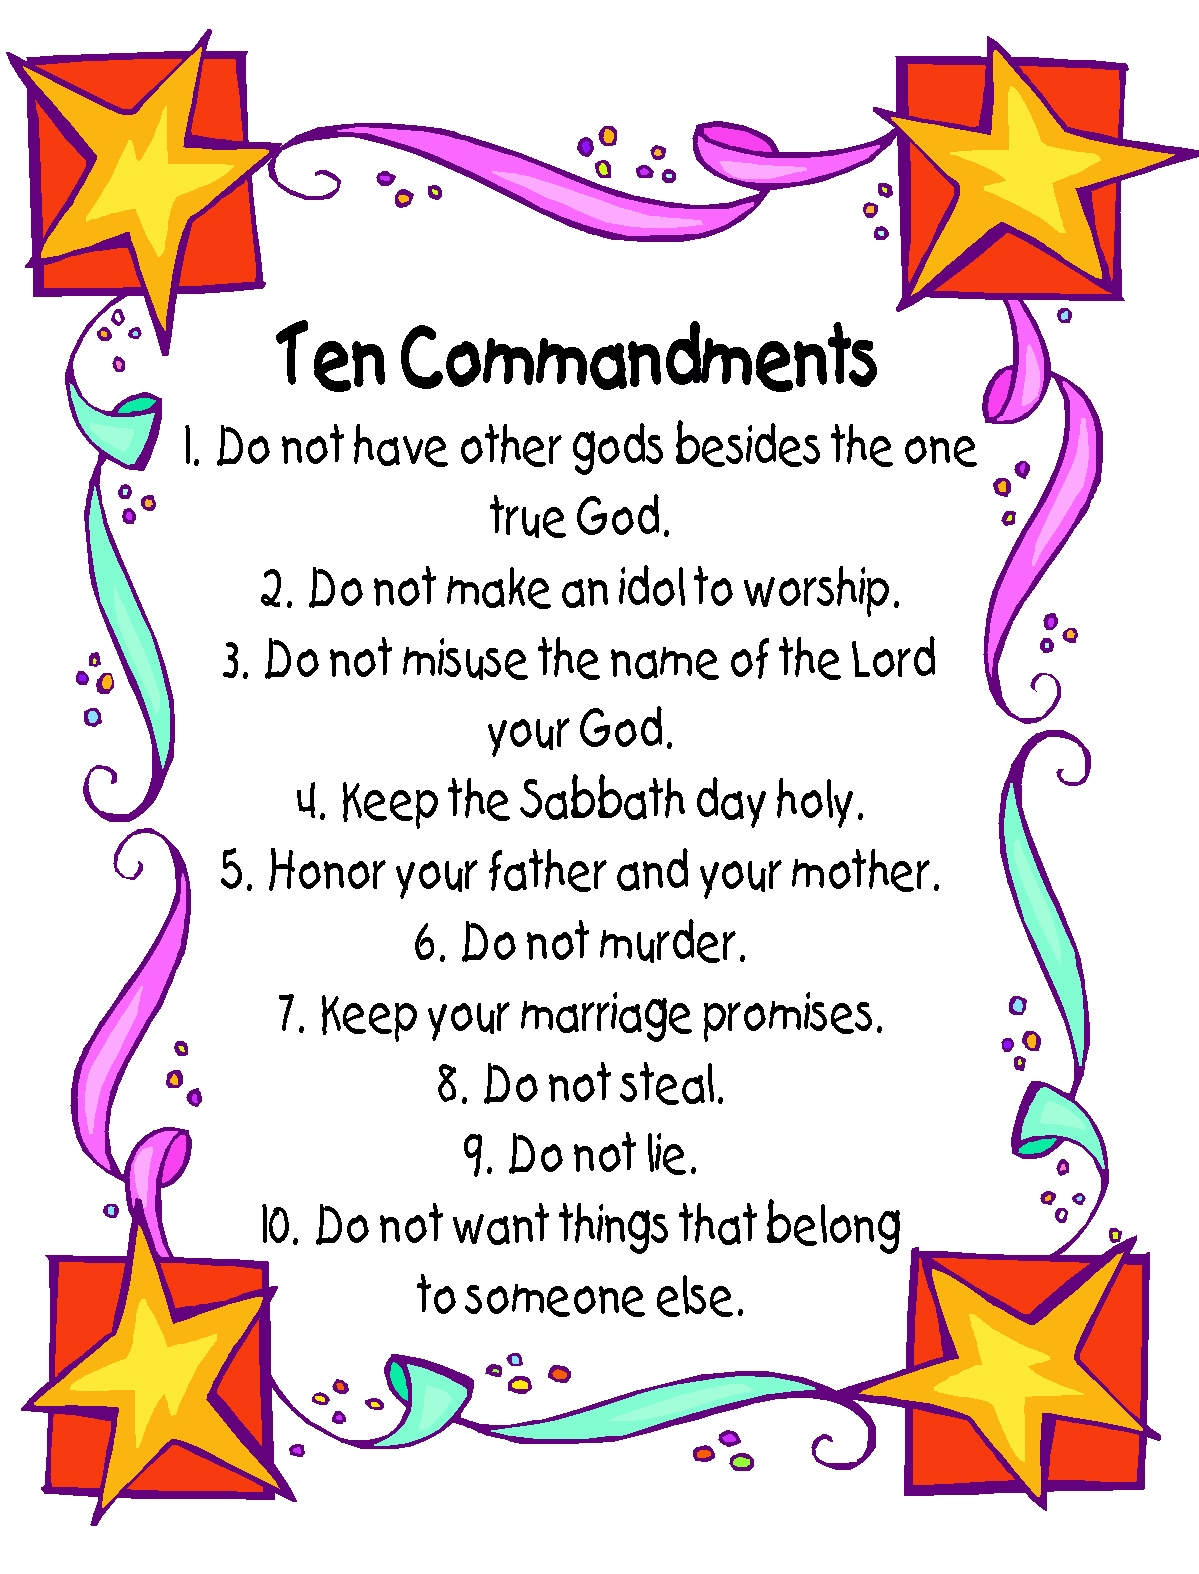 photo regarding 10 Commandments Poster Printable named 10 Commandments Poster absolutely free printable child welcoming